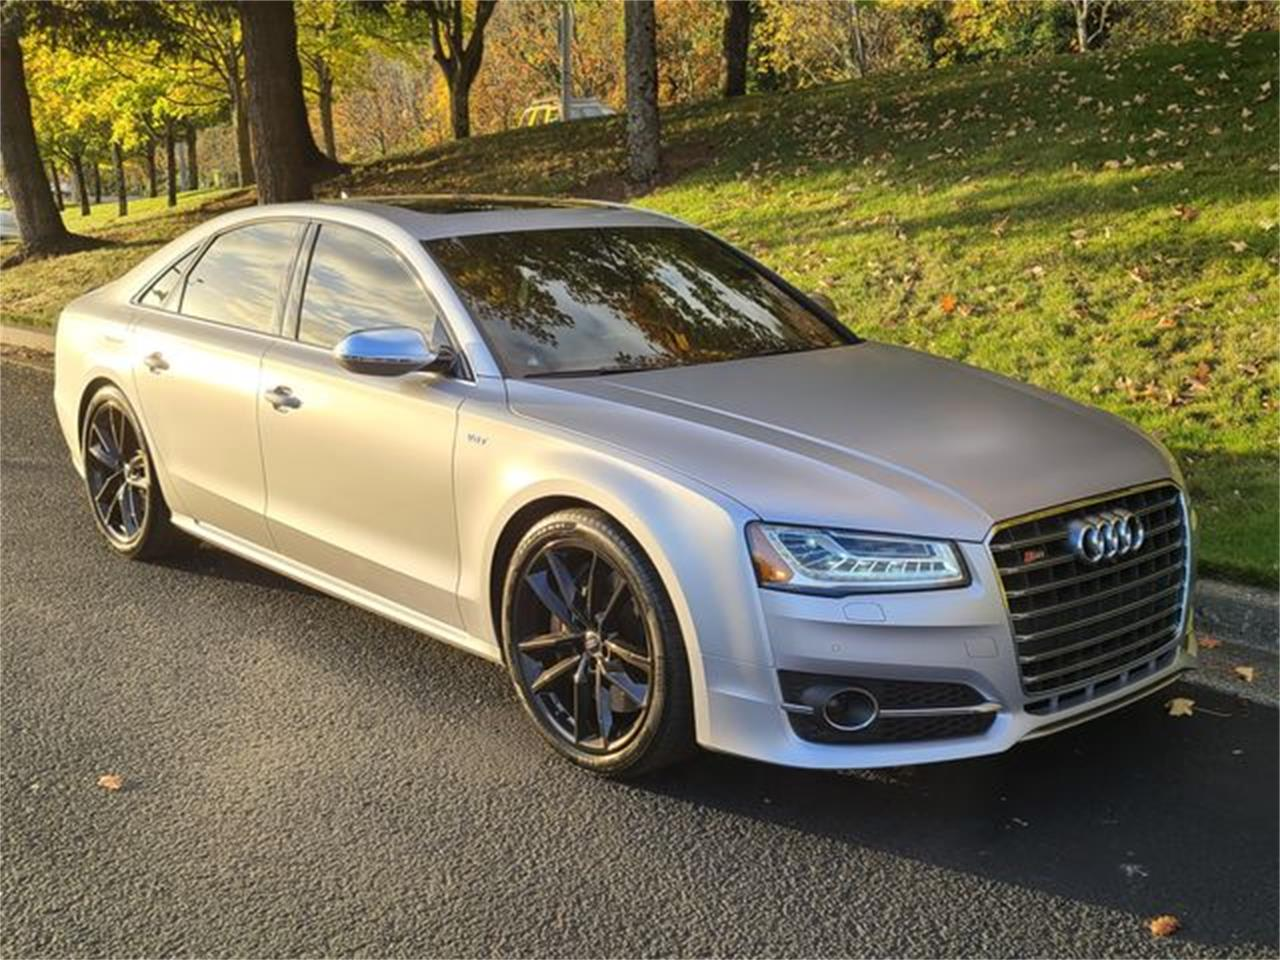 2017 Audi S8 (CC-1420542) for sale in Seattle, Washington